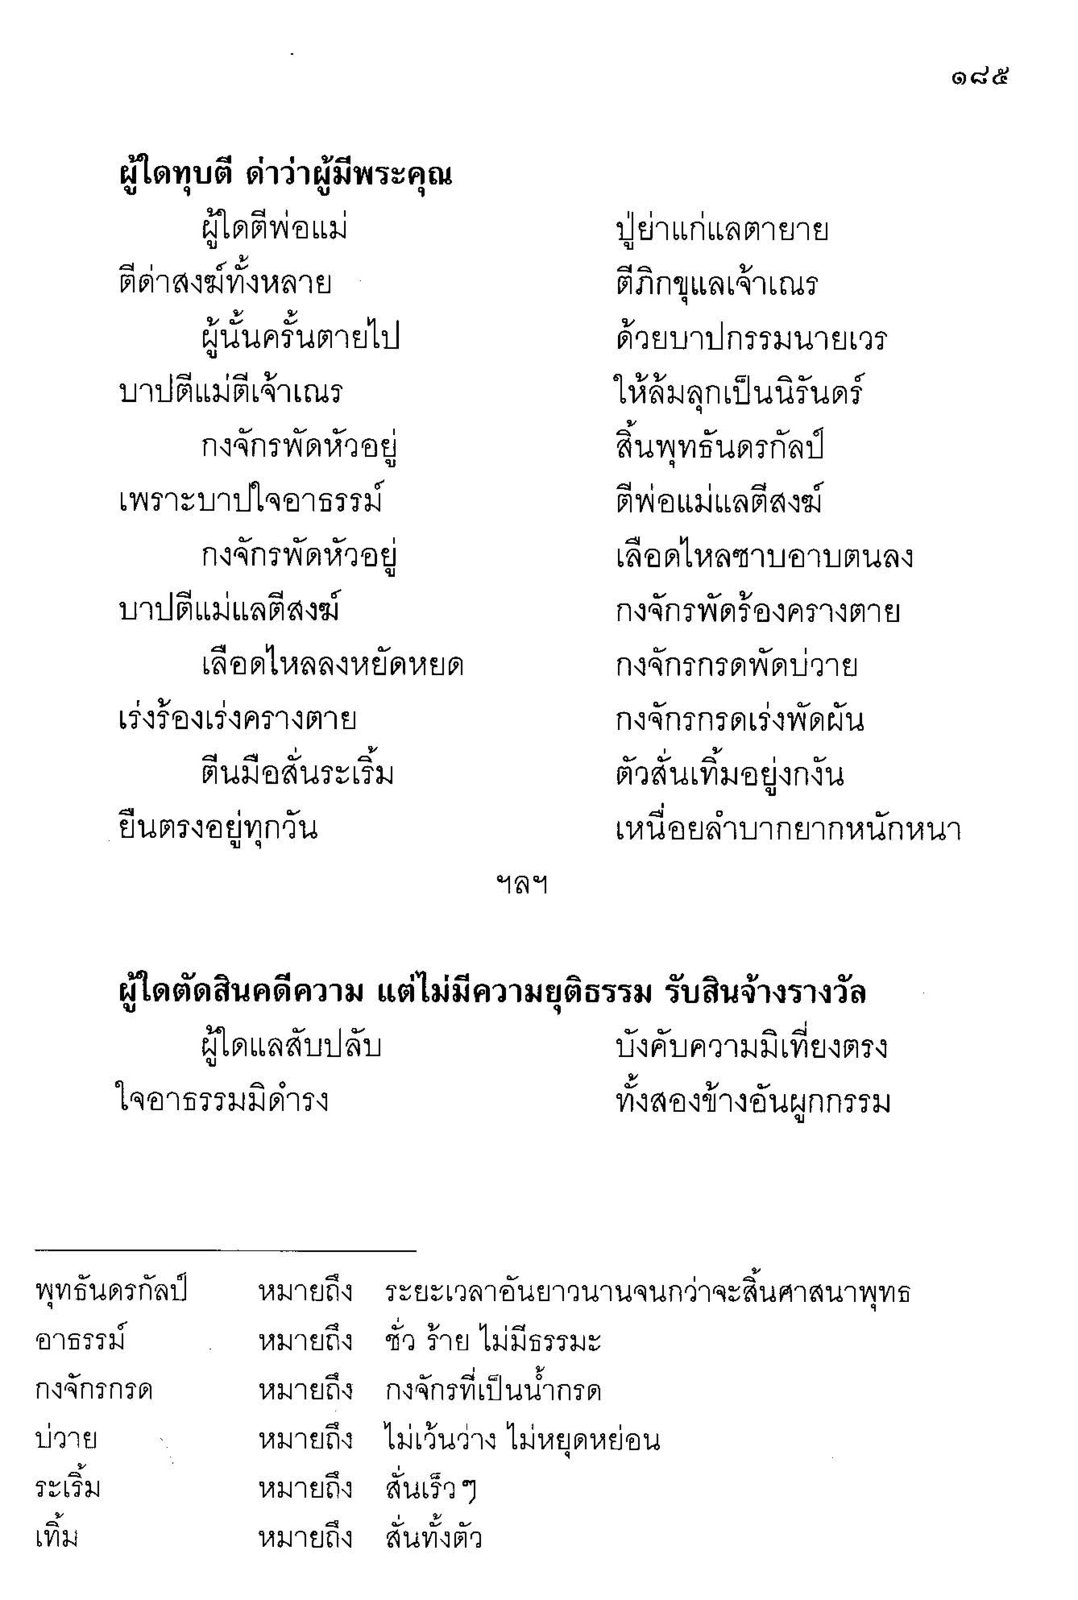 ebook_thai_sect_2_65-990_Page_193.jpg